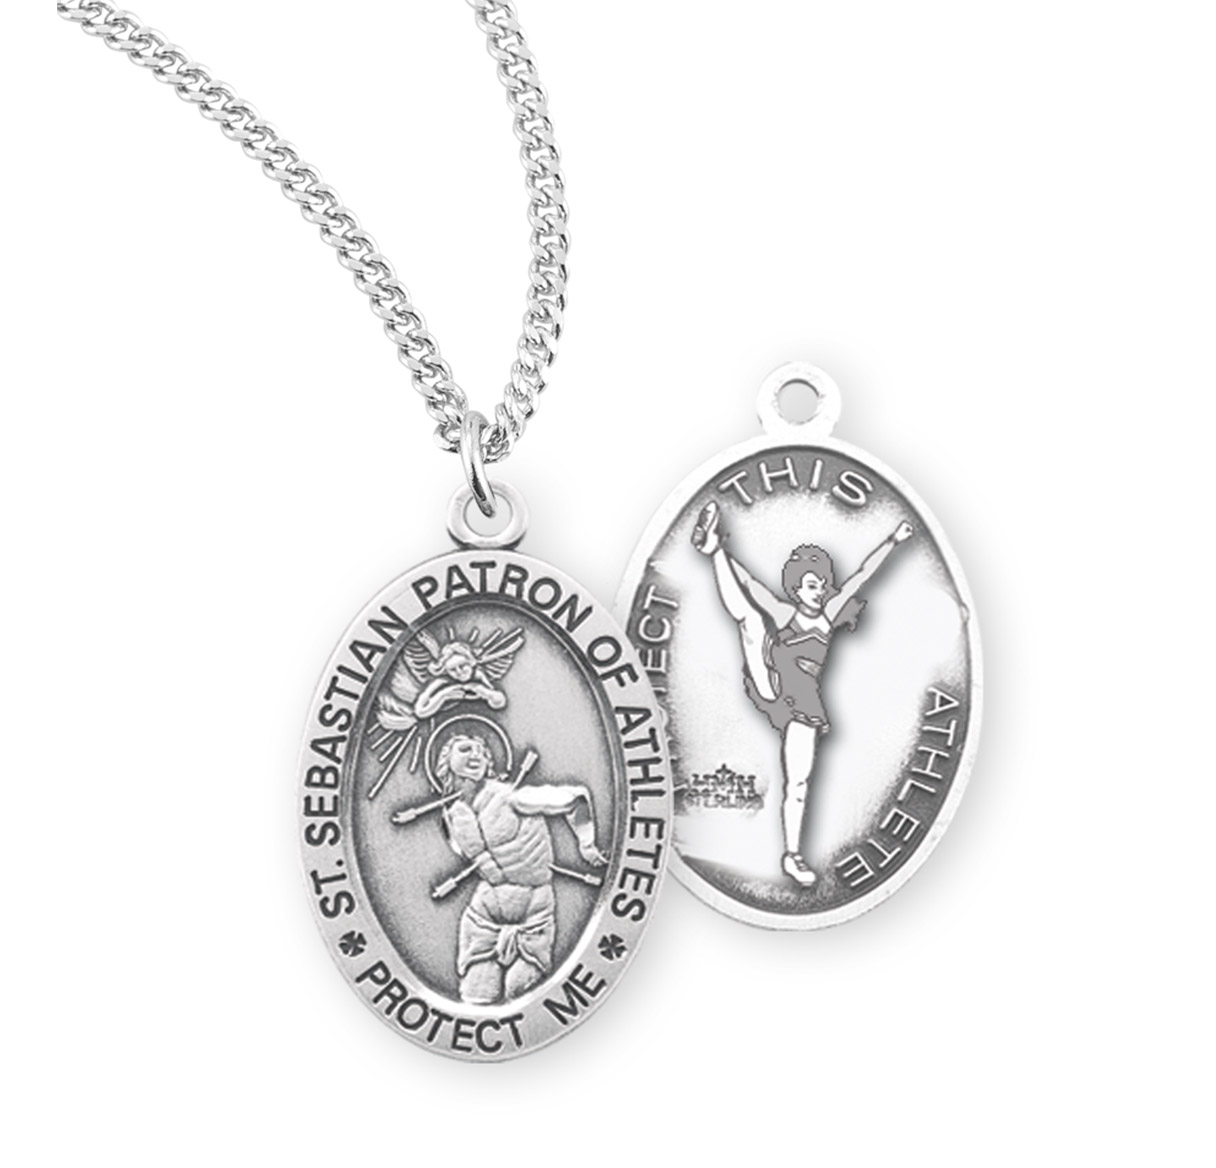 Sebastian//Figure Skating Pendant DiamondJewelryNY 14kt Gold Filled St